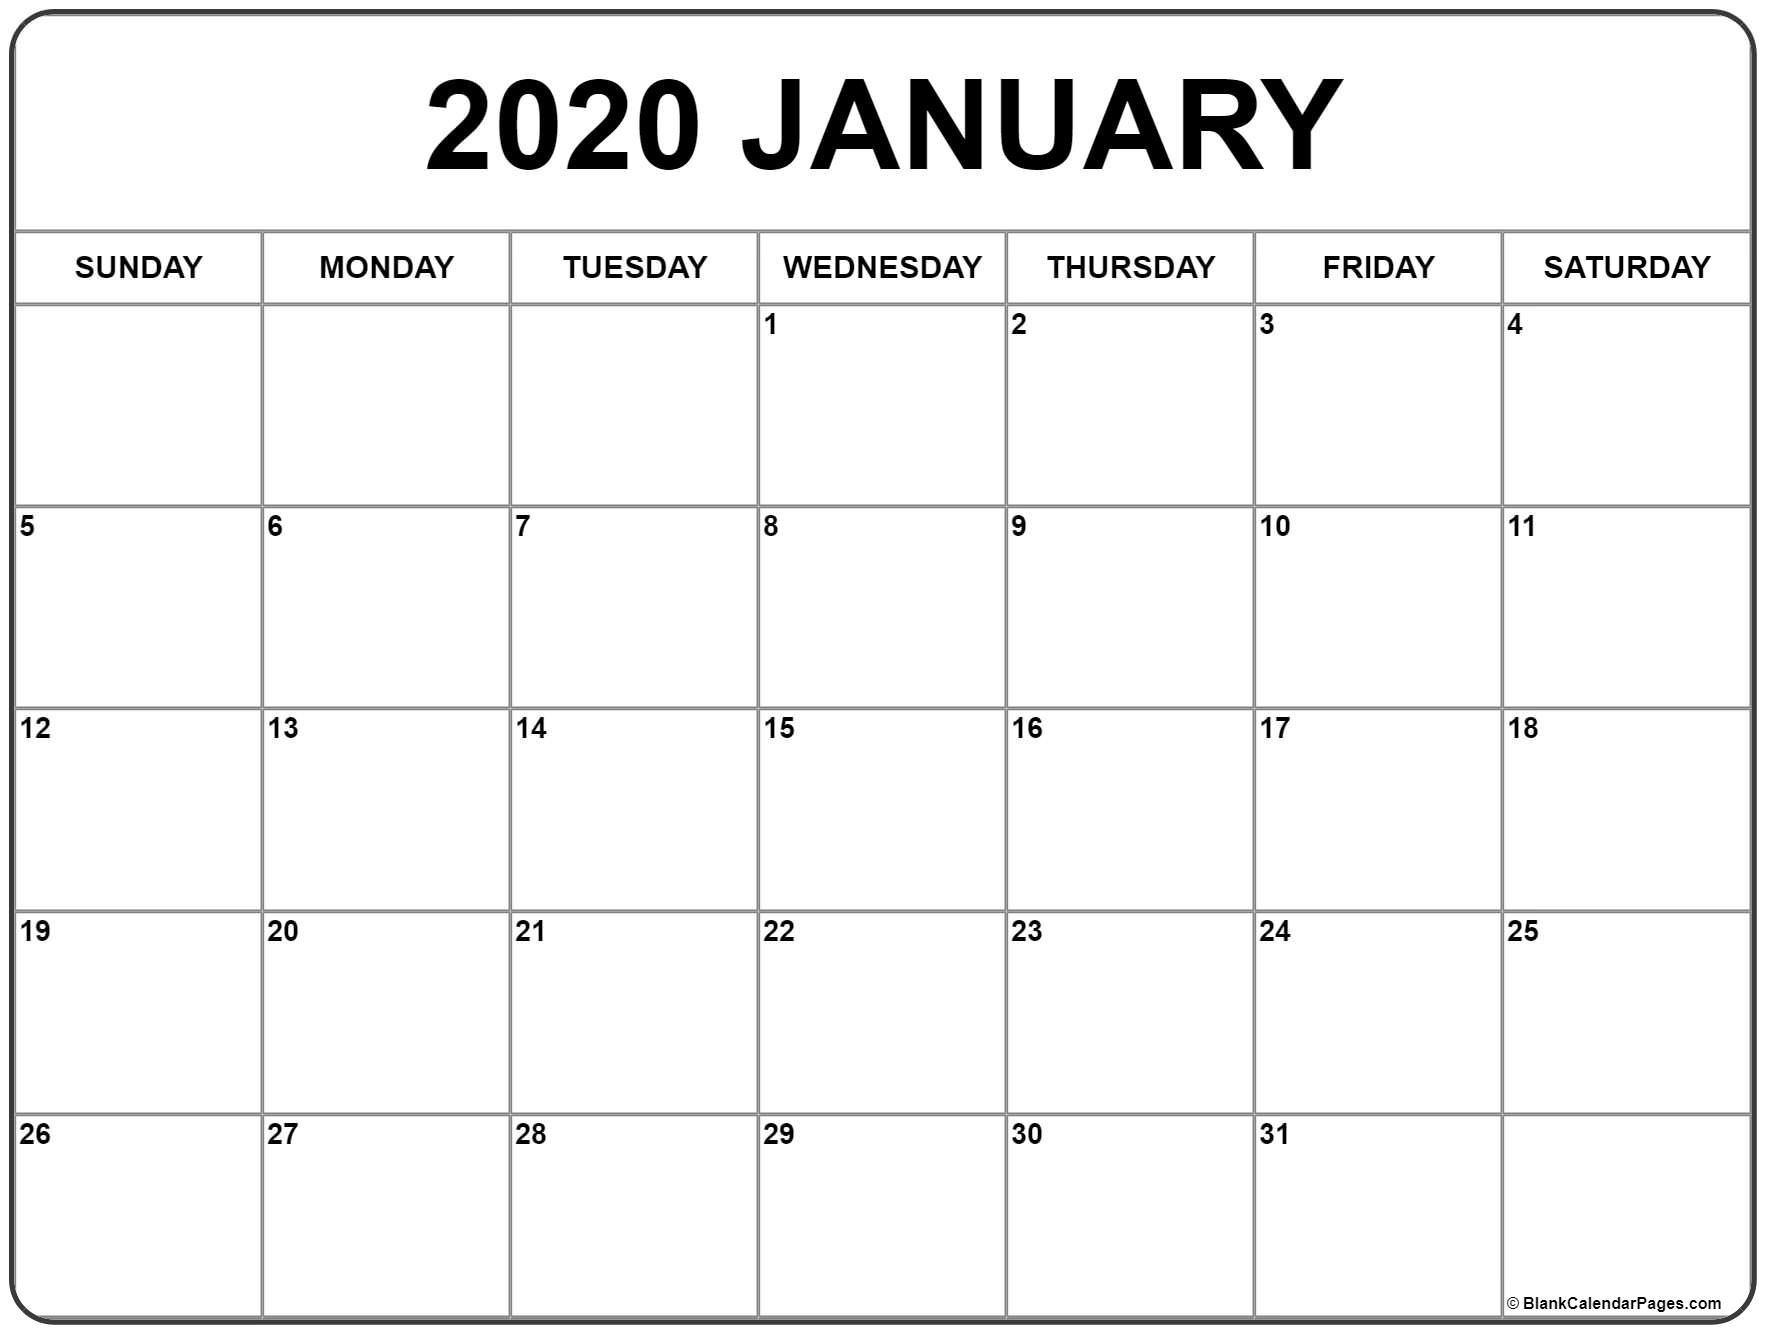 January 2020 Calendar | Free Printable Monthly Calendars-2020 Free Monthly Printable Calendar Monday Thru Friday